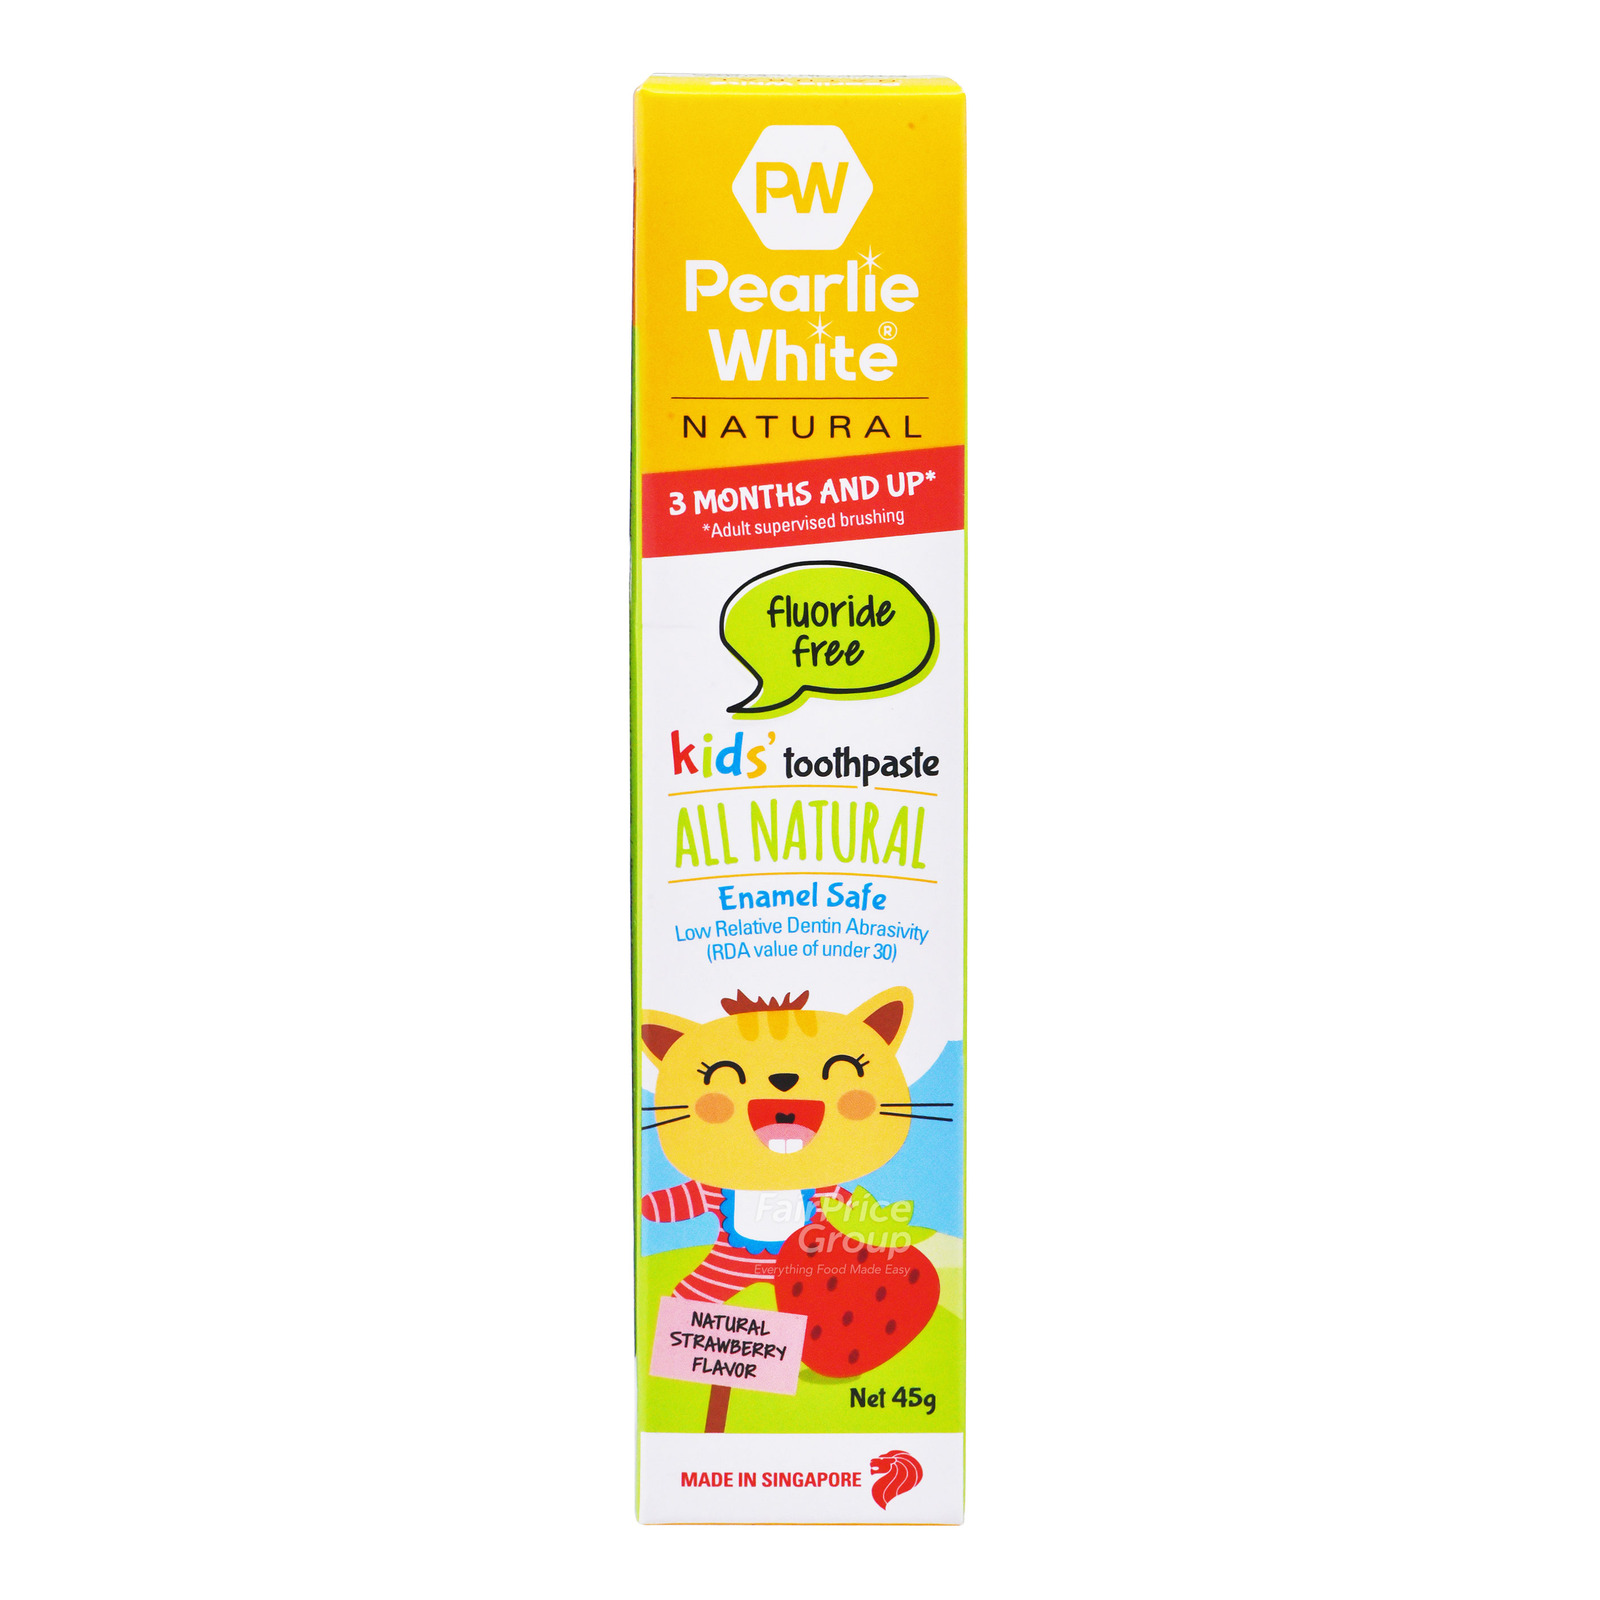 Pearlie White Natural Kids Toothpaste - Natural Strawberry